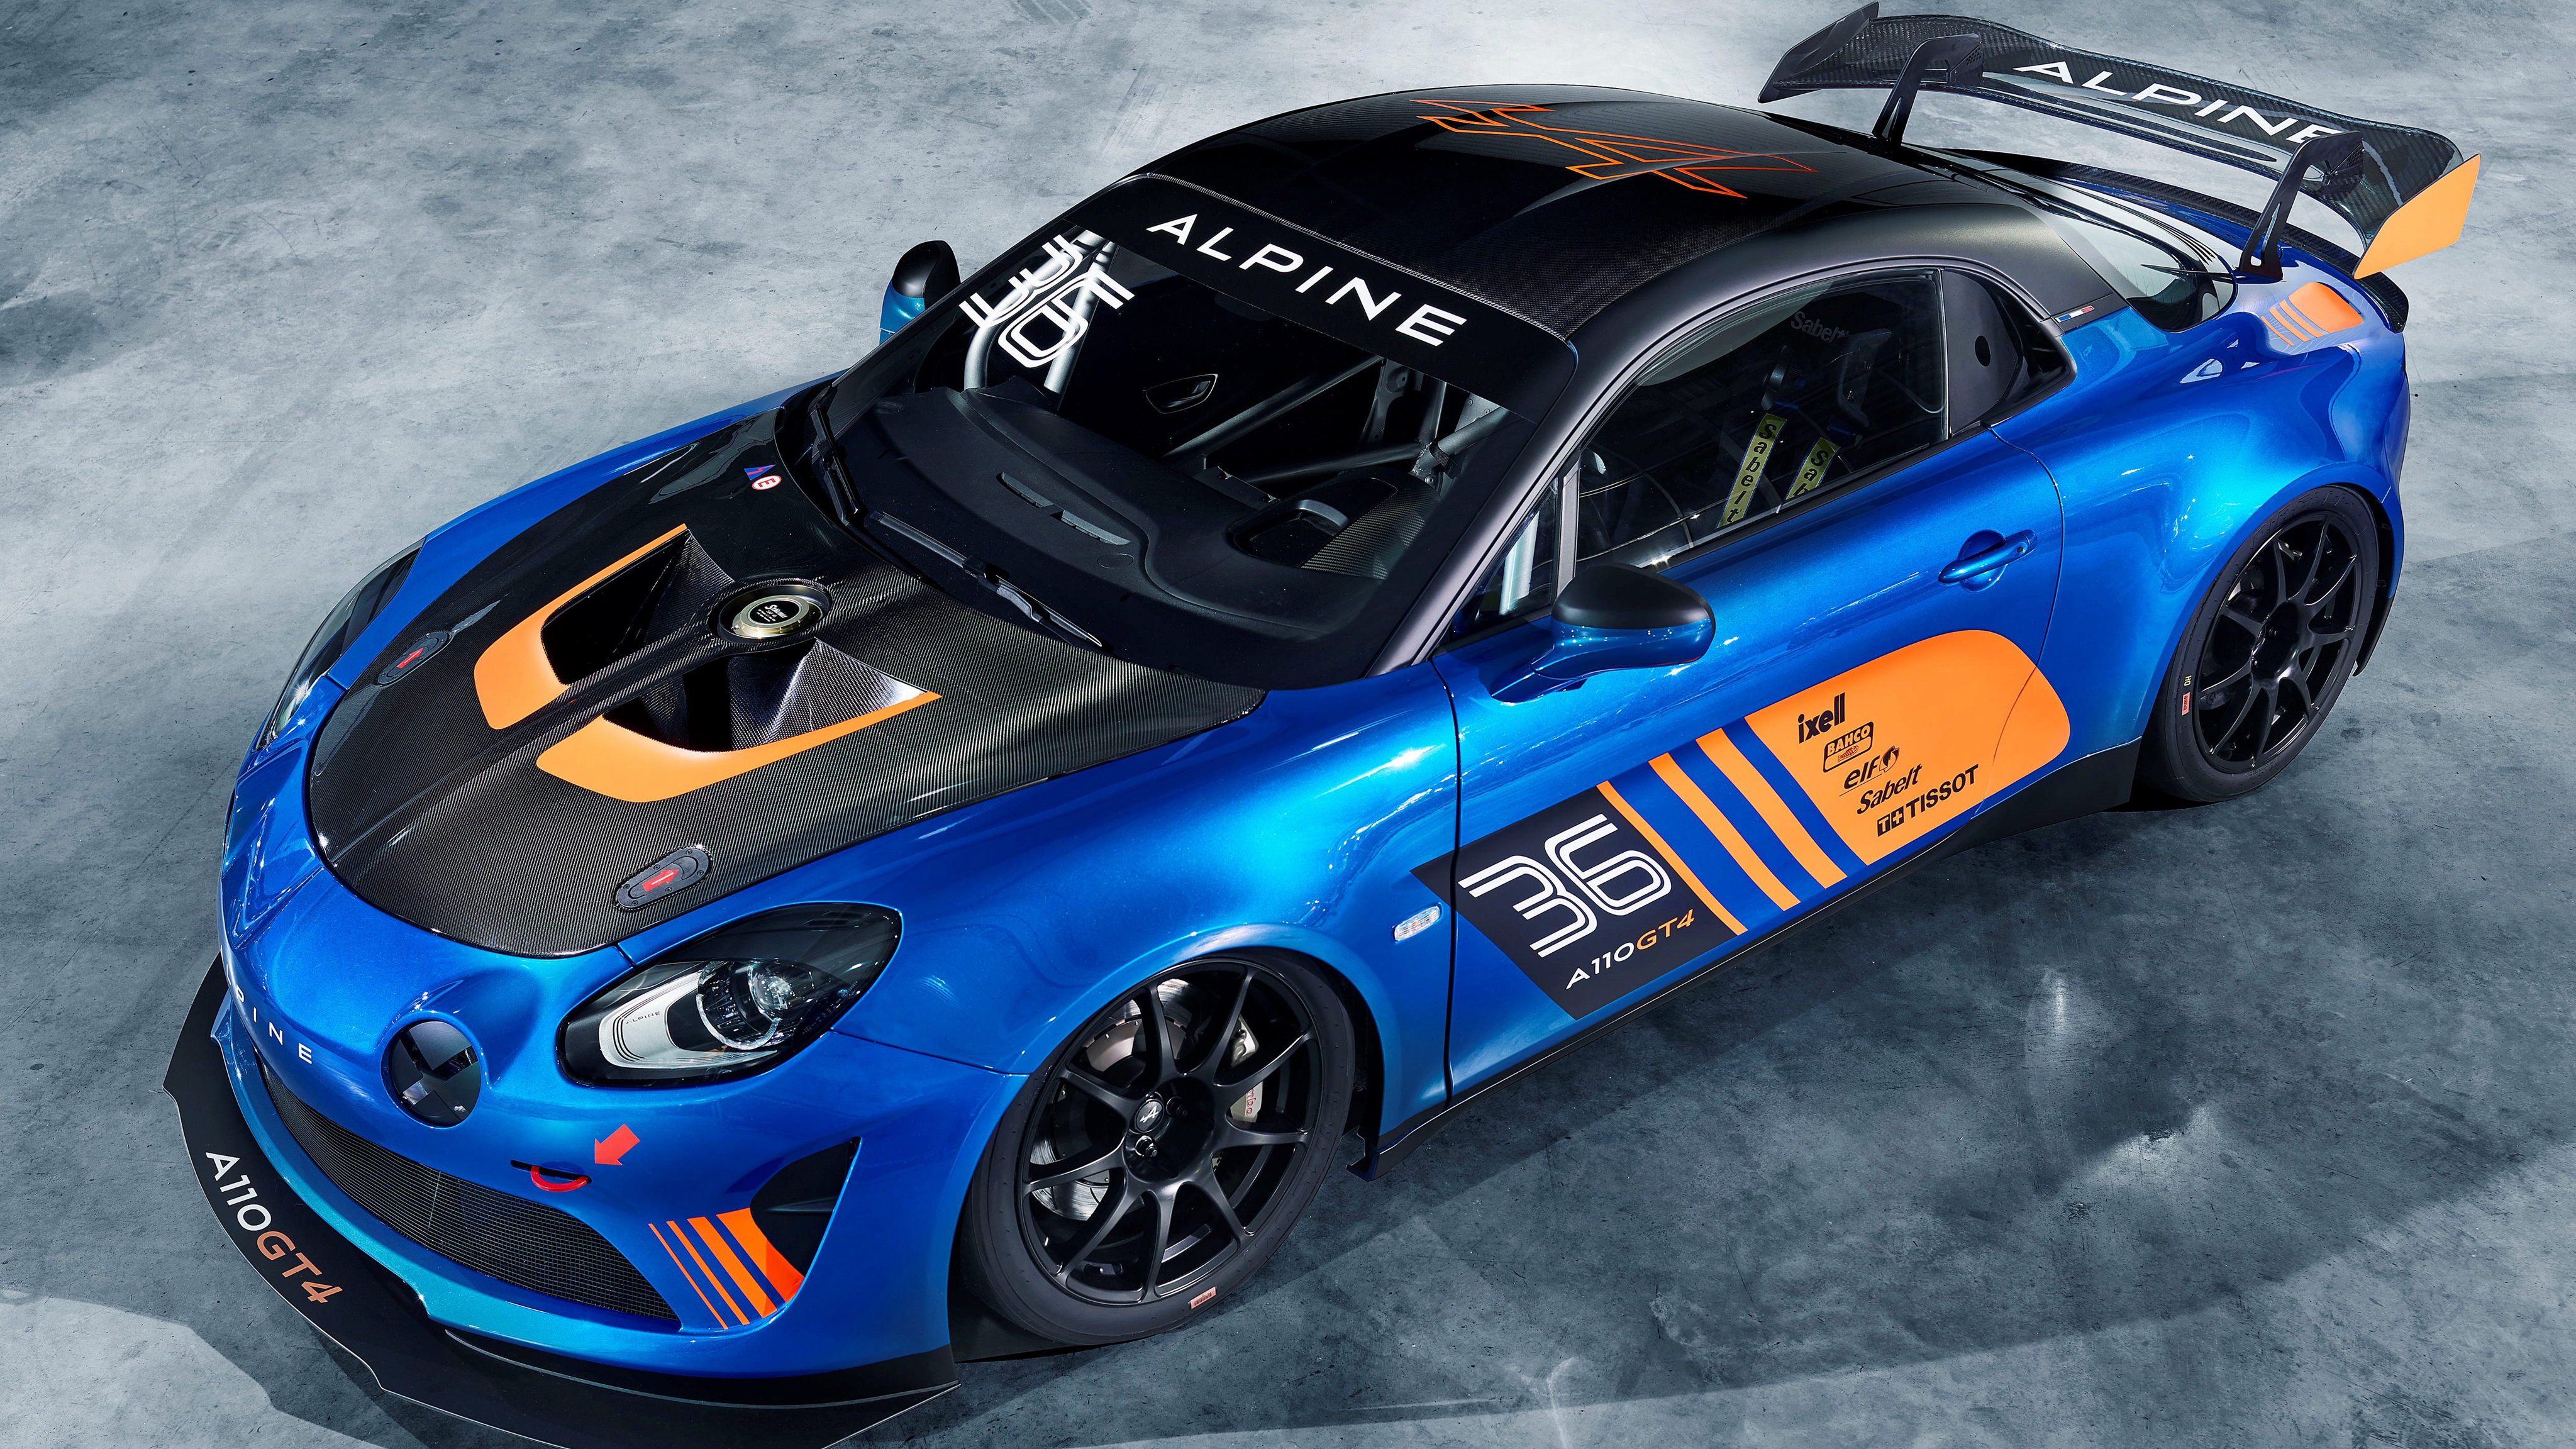 2018 alpine a110 gt4 4k wallpaper hd car wallpapers id 9712. Black Bedroom Furniture Sets. Home Design Ideas